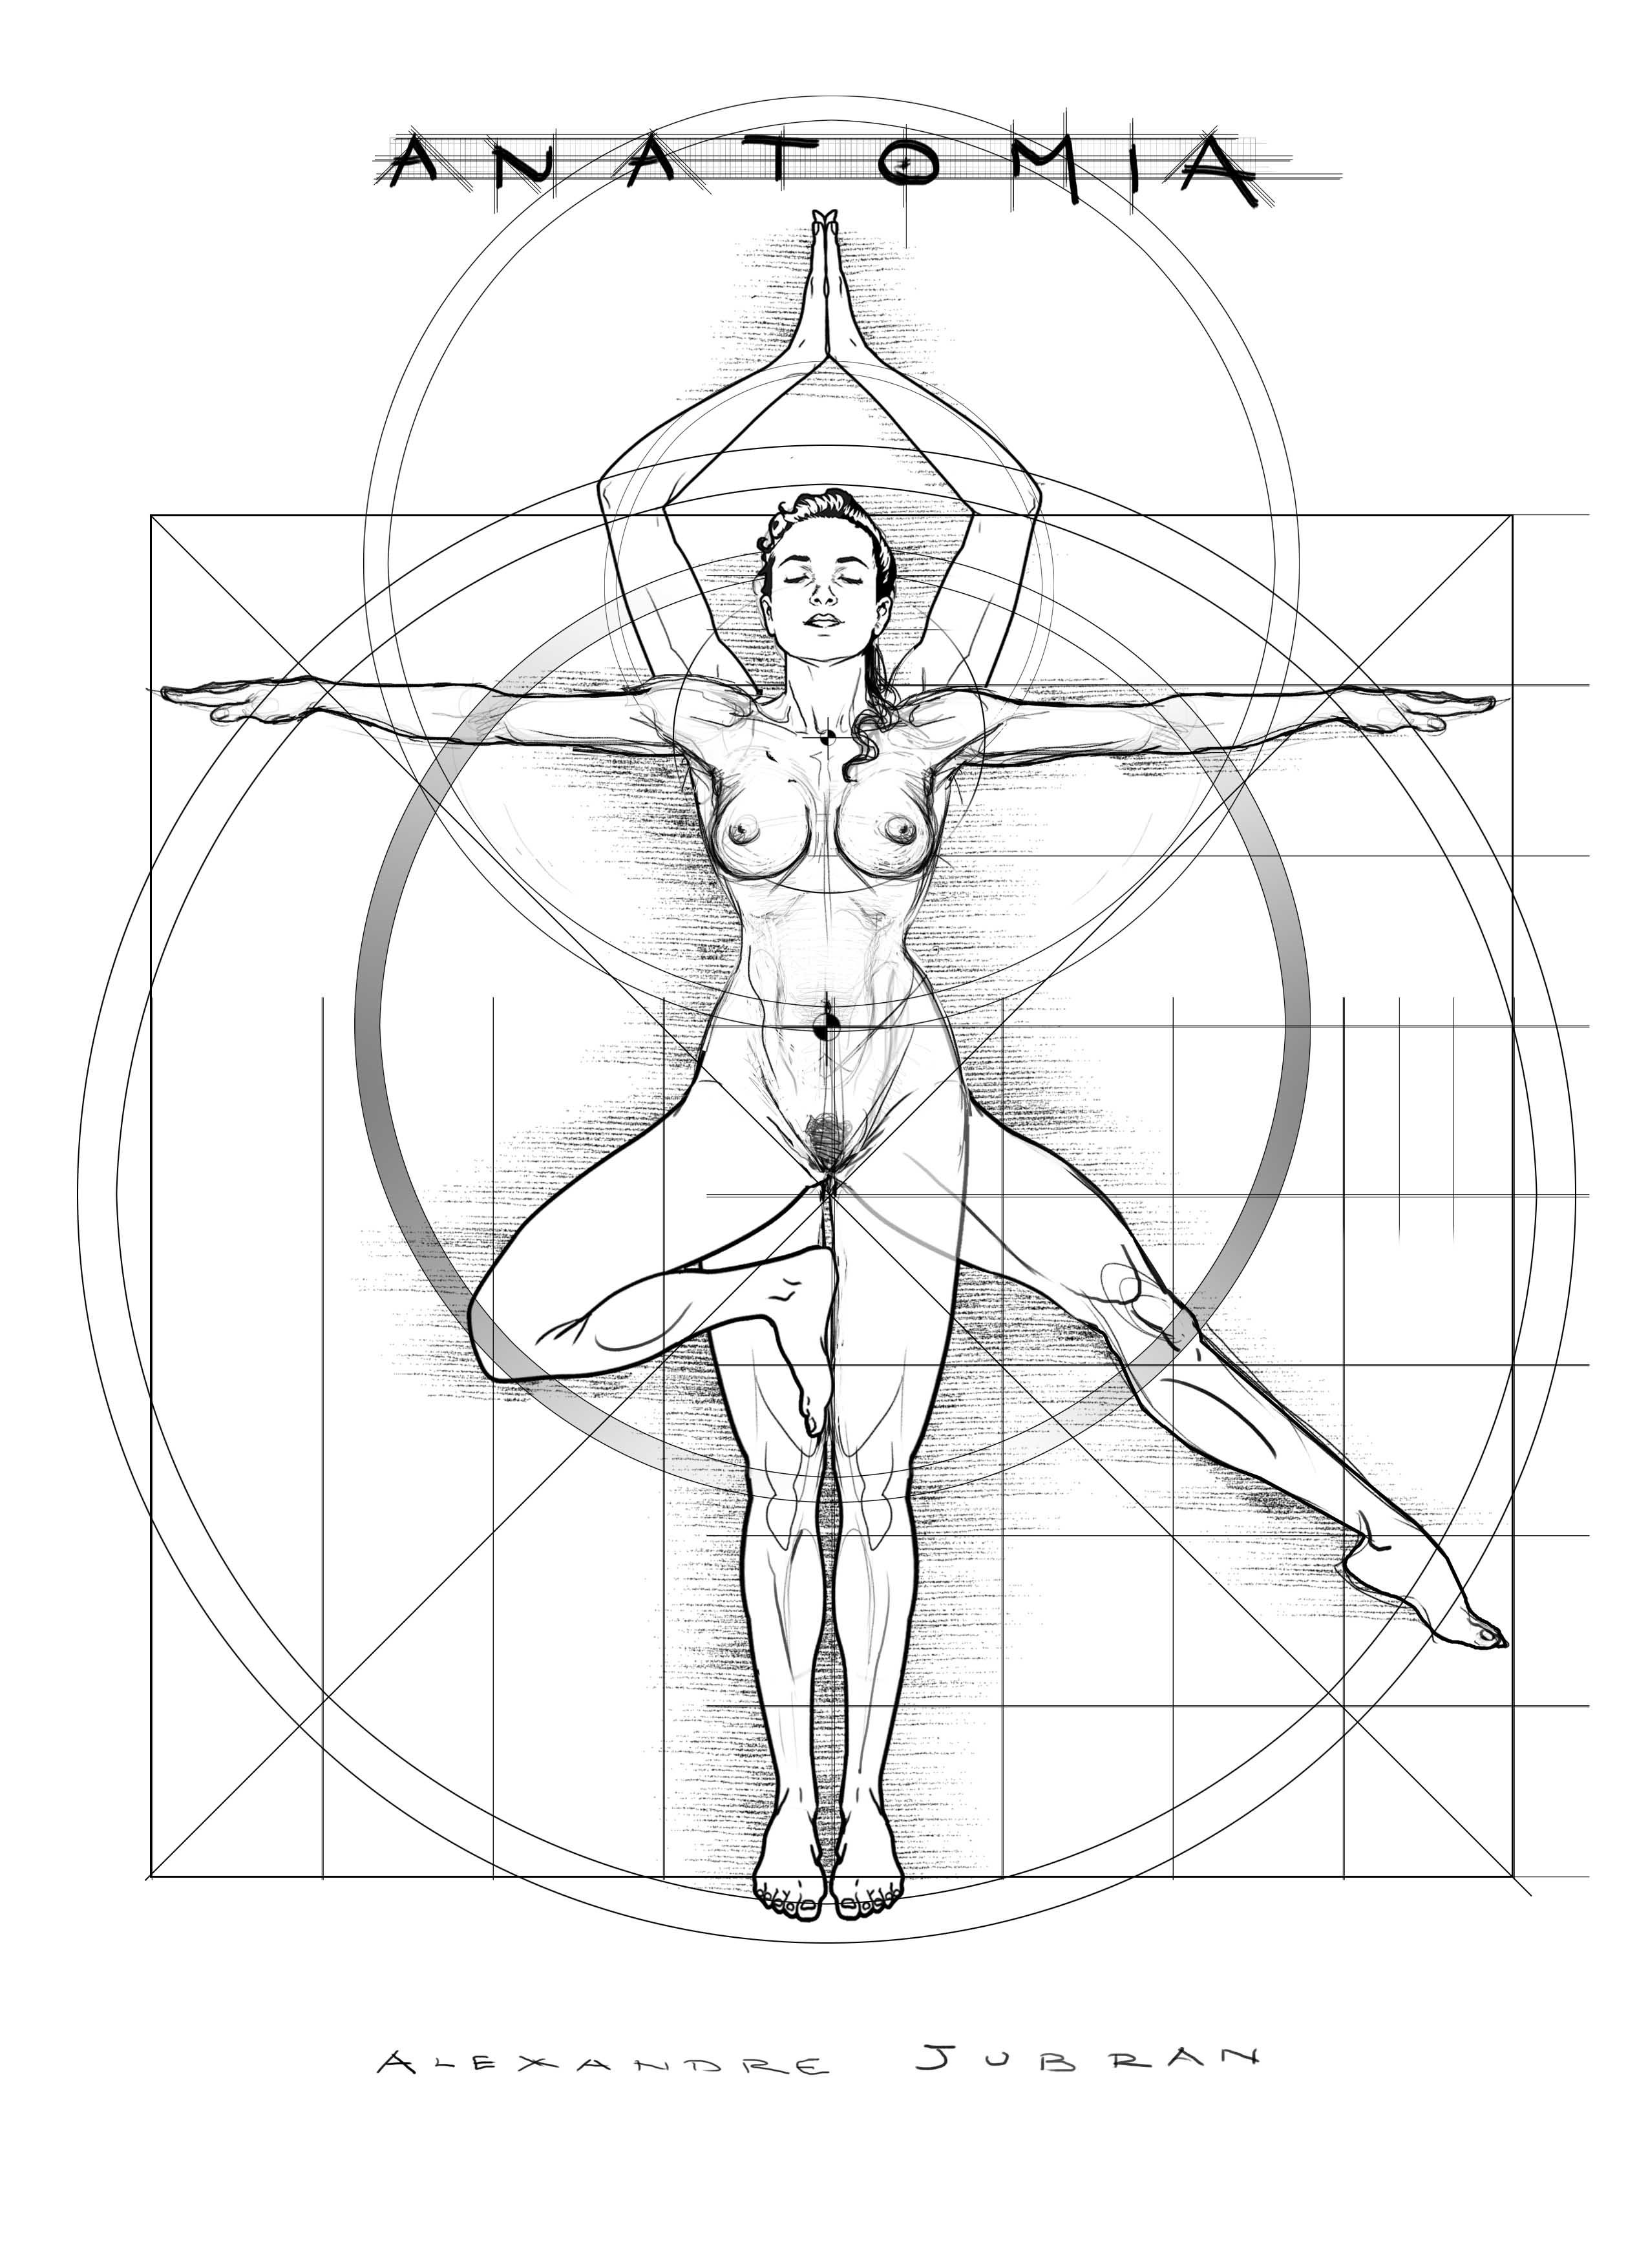 Pin by Henry Bridges on Anatomy | Pinterest | Anatomy, Draw and Sketches